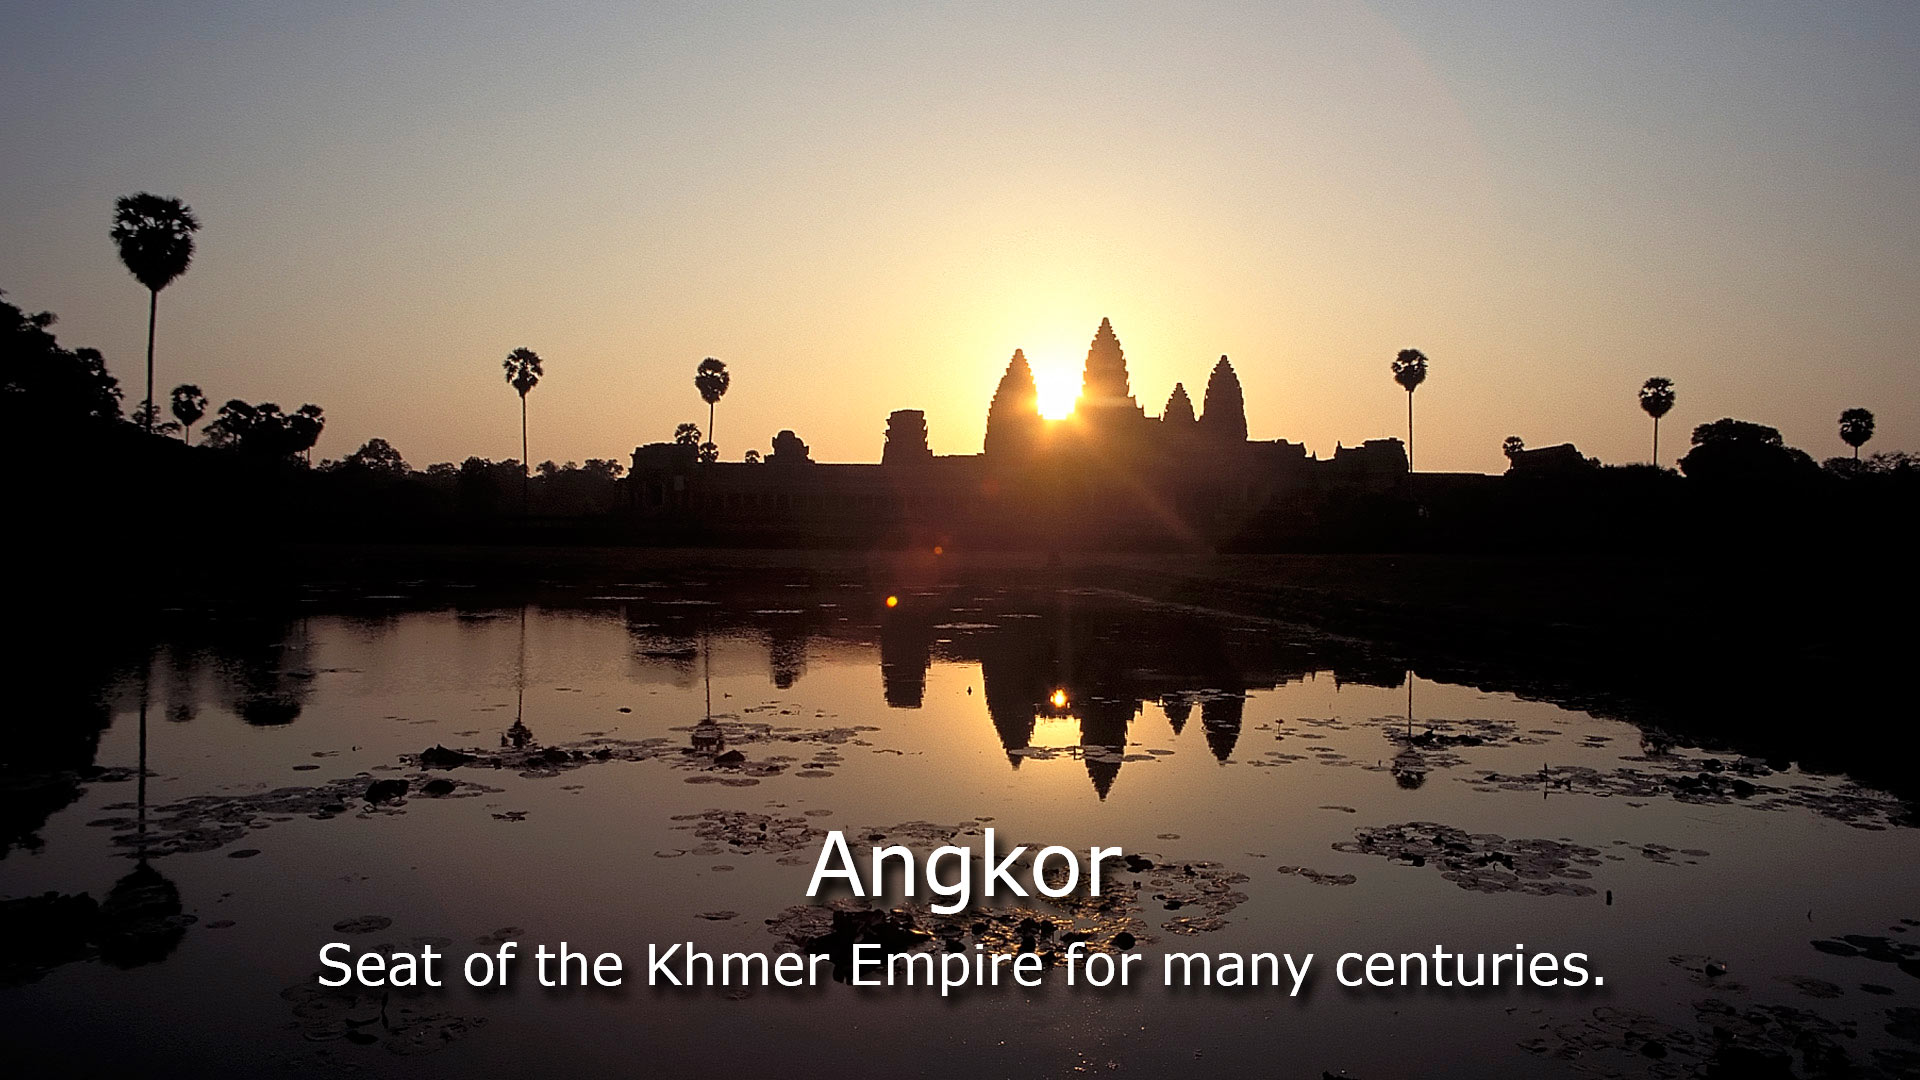 Angkor - Seat of the Khmer Empire for many centuries